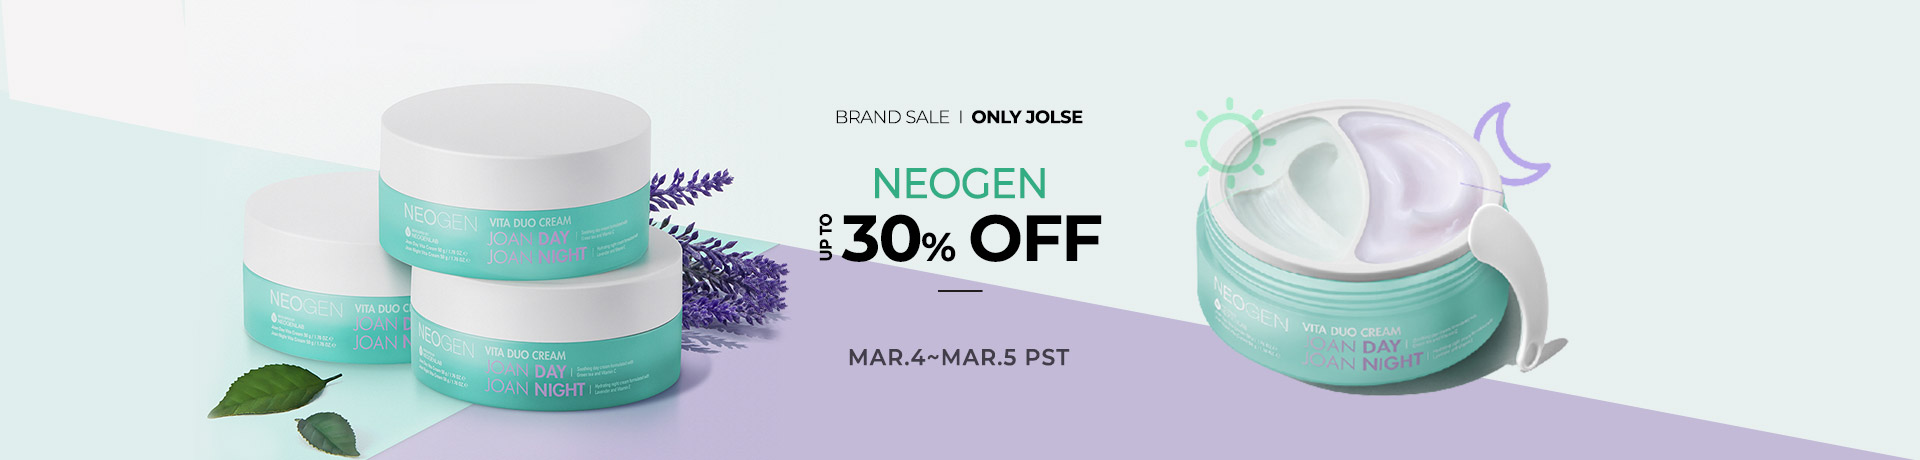 NEOGEN Up to 30% OFF